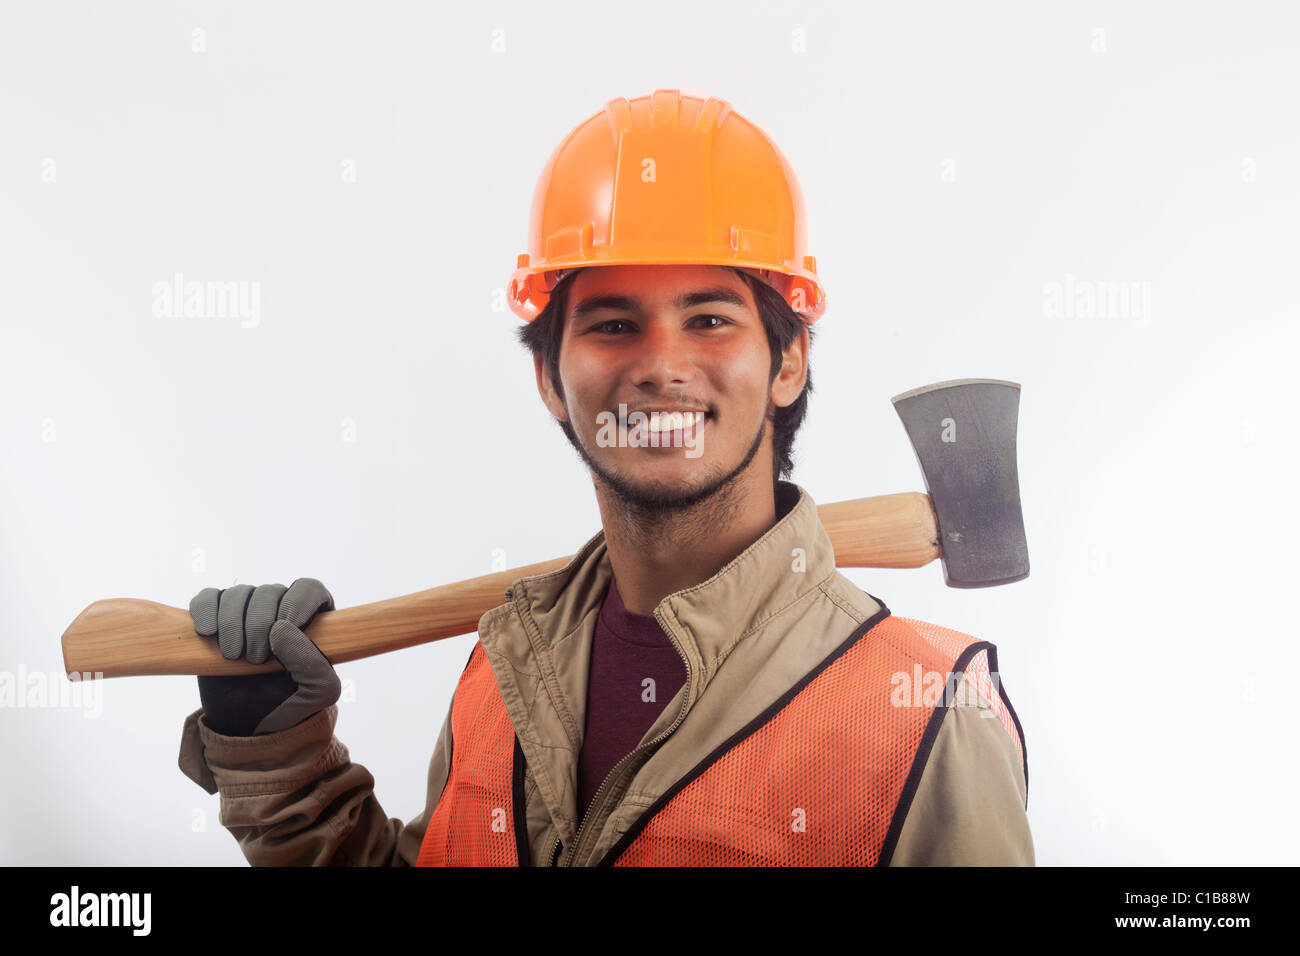 asian hard hat worker with an axe - Stock Image